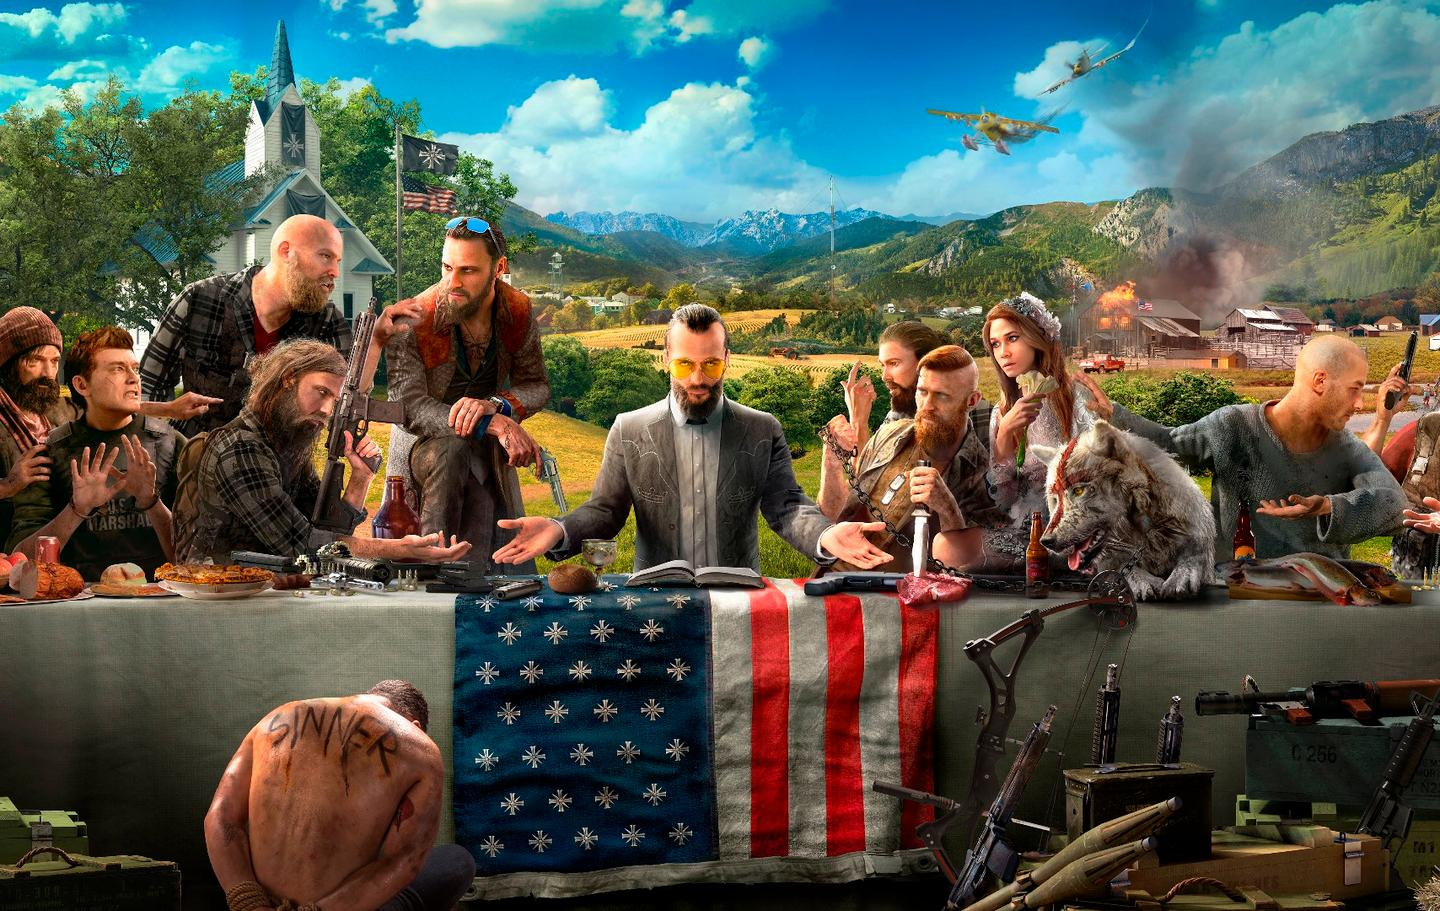 Far Cry 5 puts players in charge of rising up against a cult in Montana, and will likely be detailed during Ubisoft's E3 show